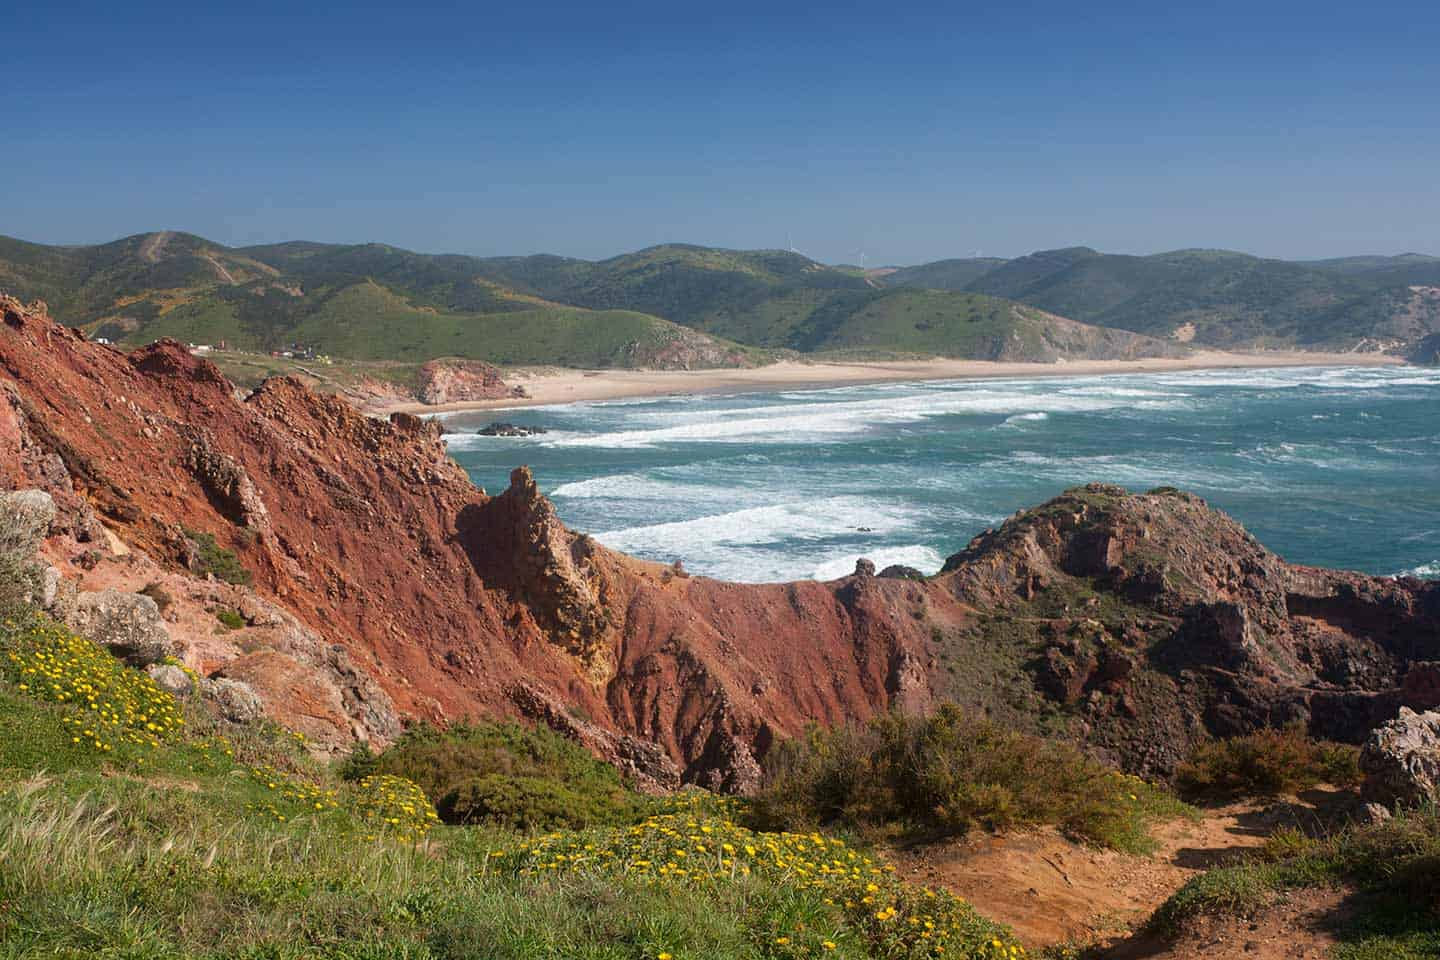 Rota Vicentina Image of ochre cliffs and Praia do Amado beach